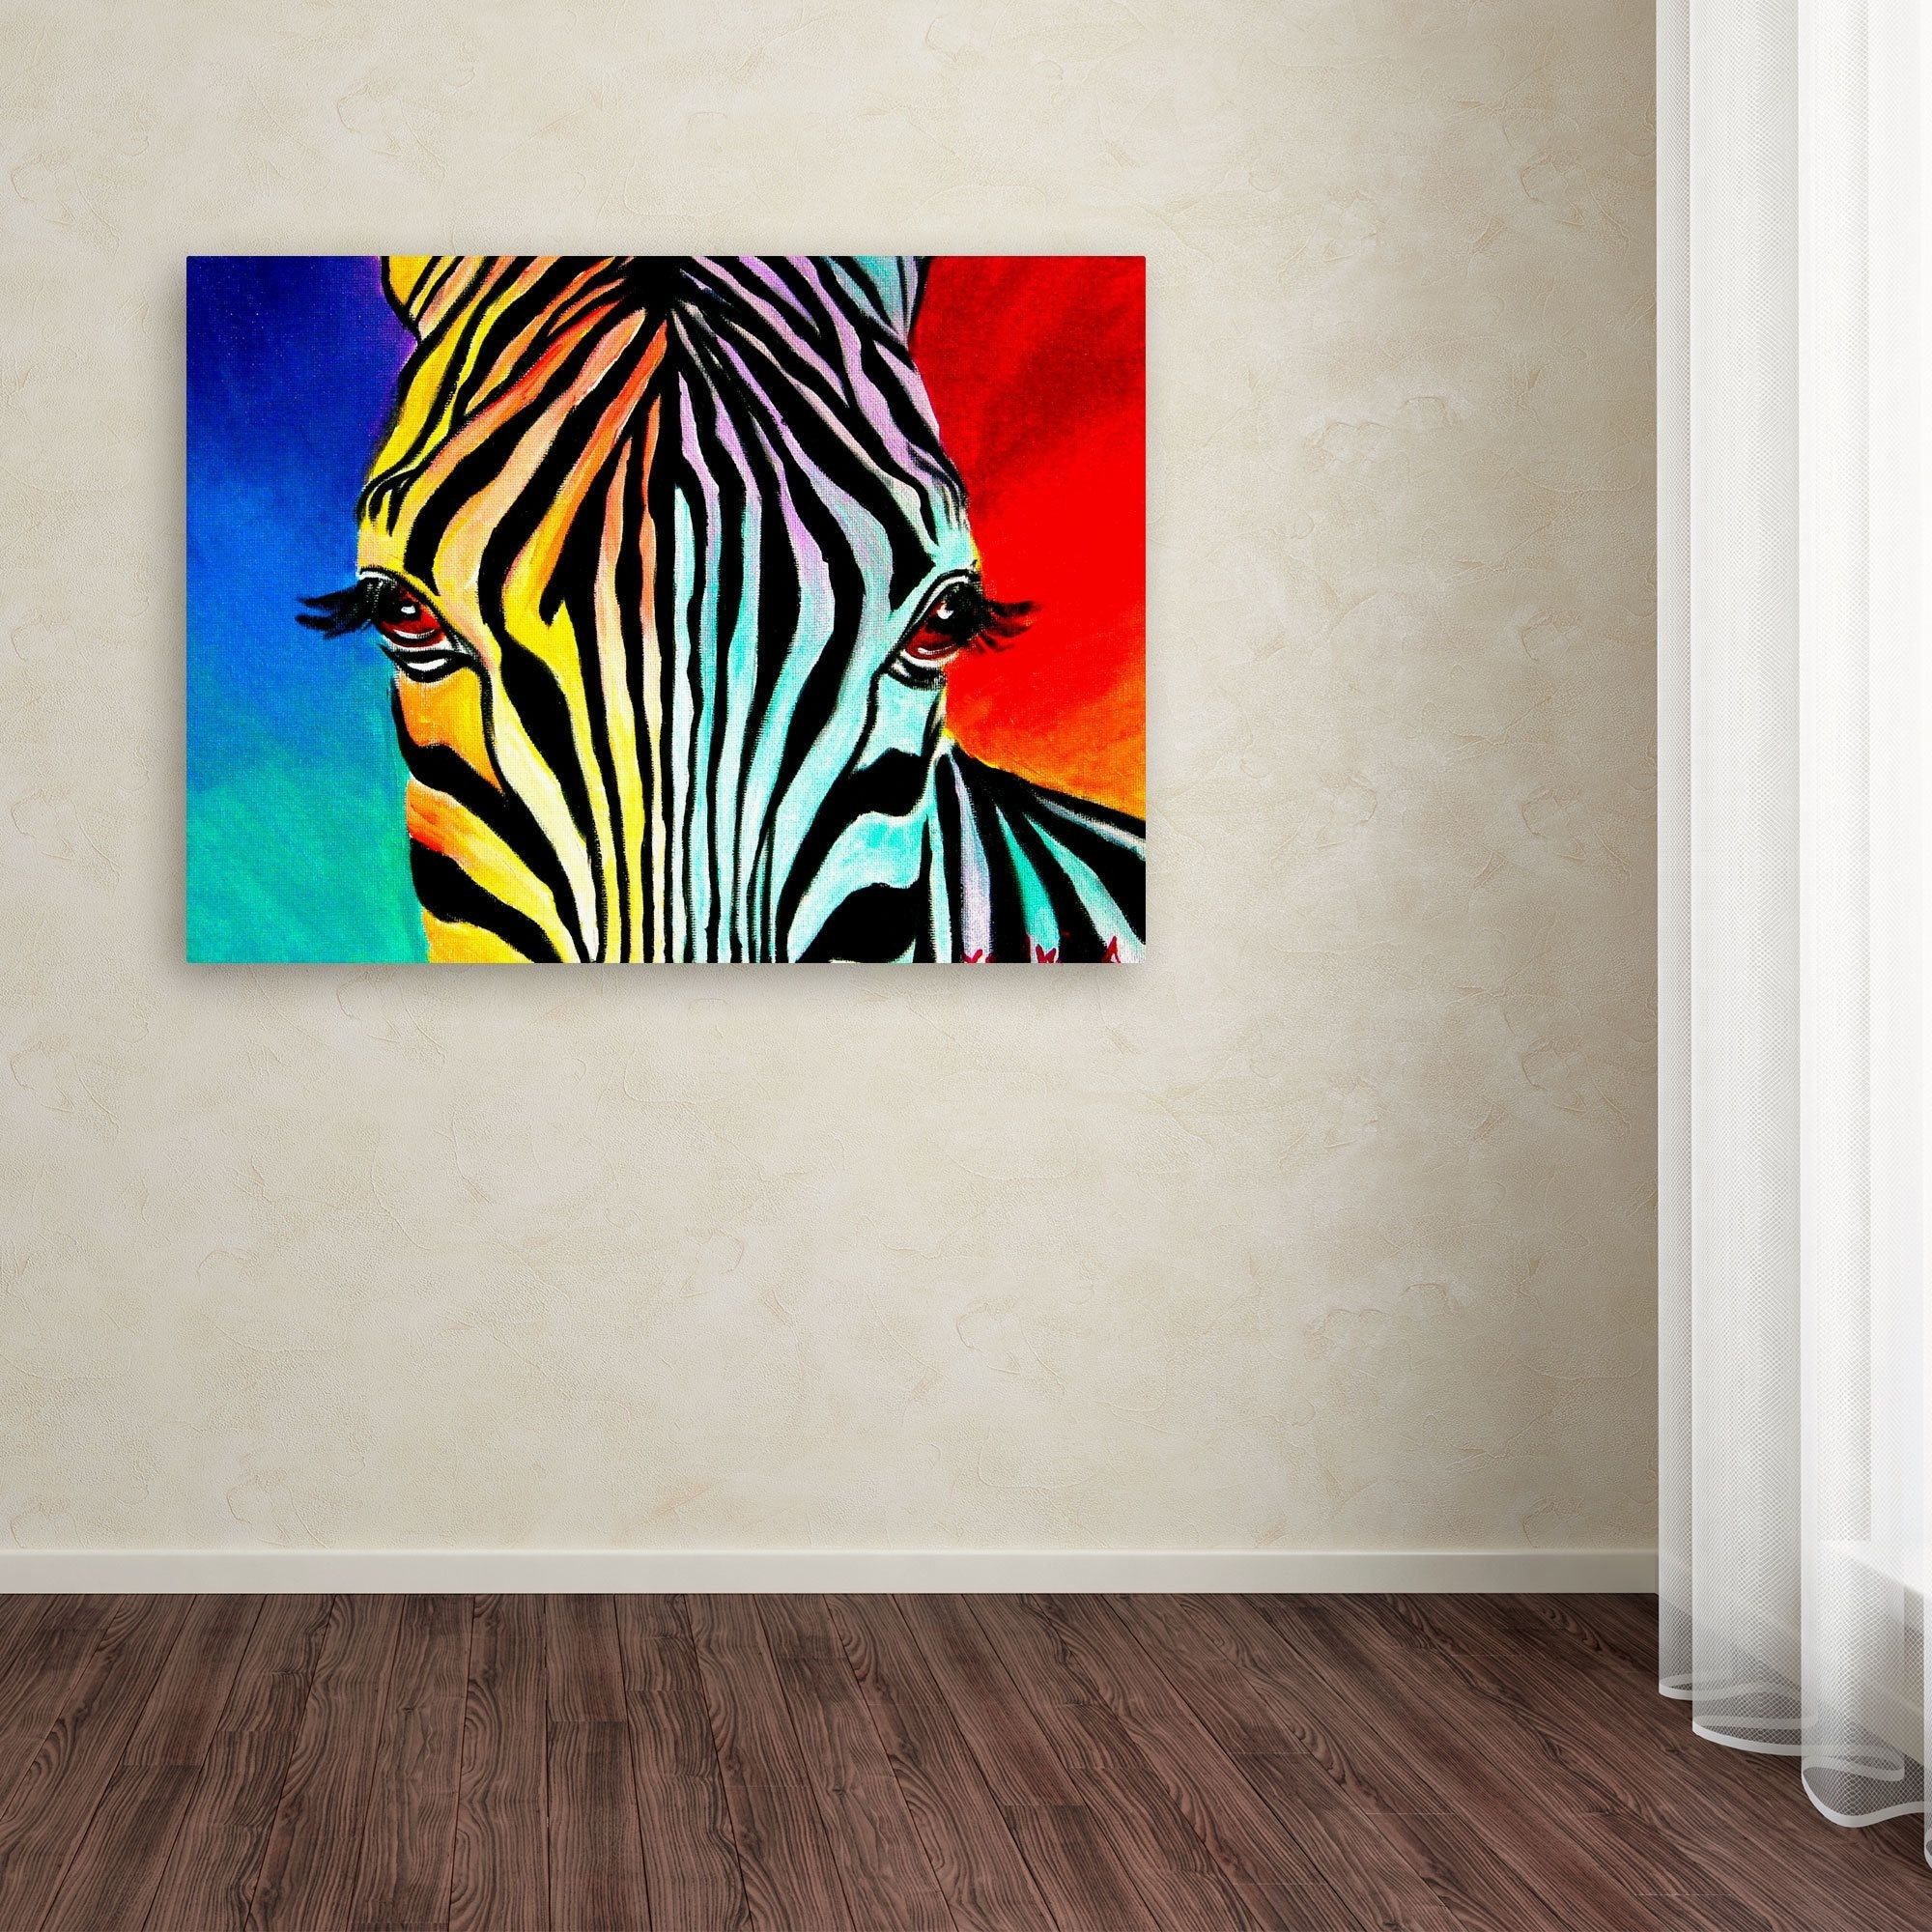 Overstock Wall Art For Recent Dawgart Zebra Canvas Art Inspiration Of Overstock Wall Art (View 9 of 20)